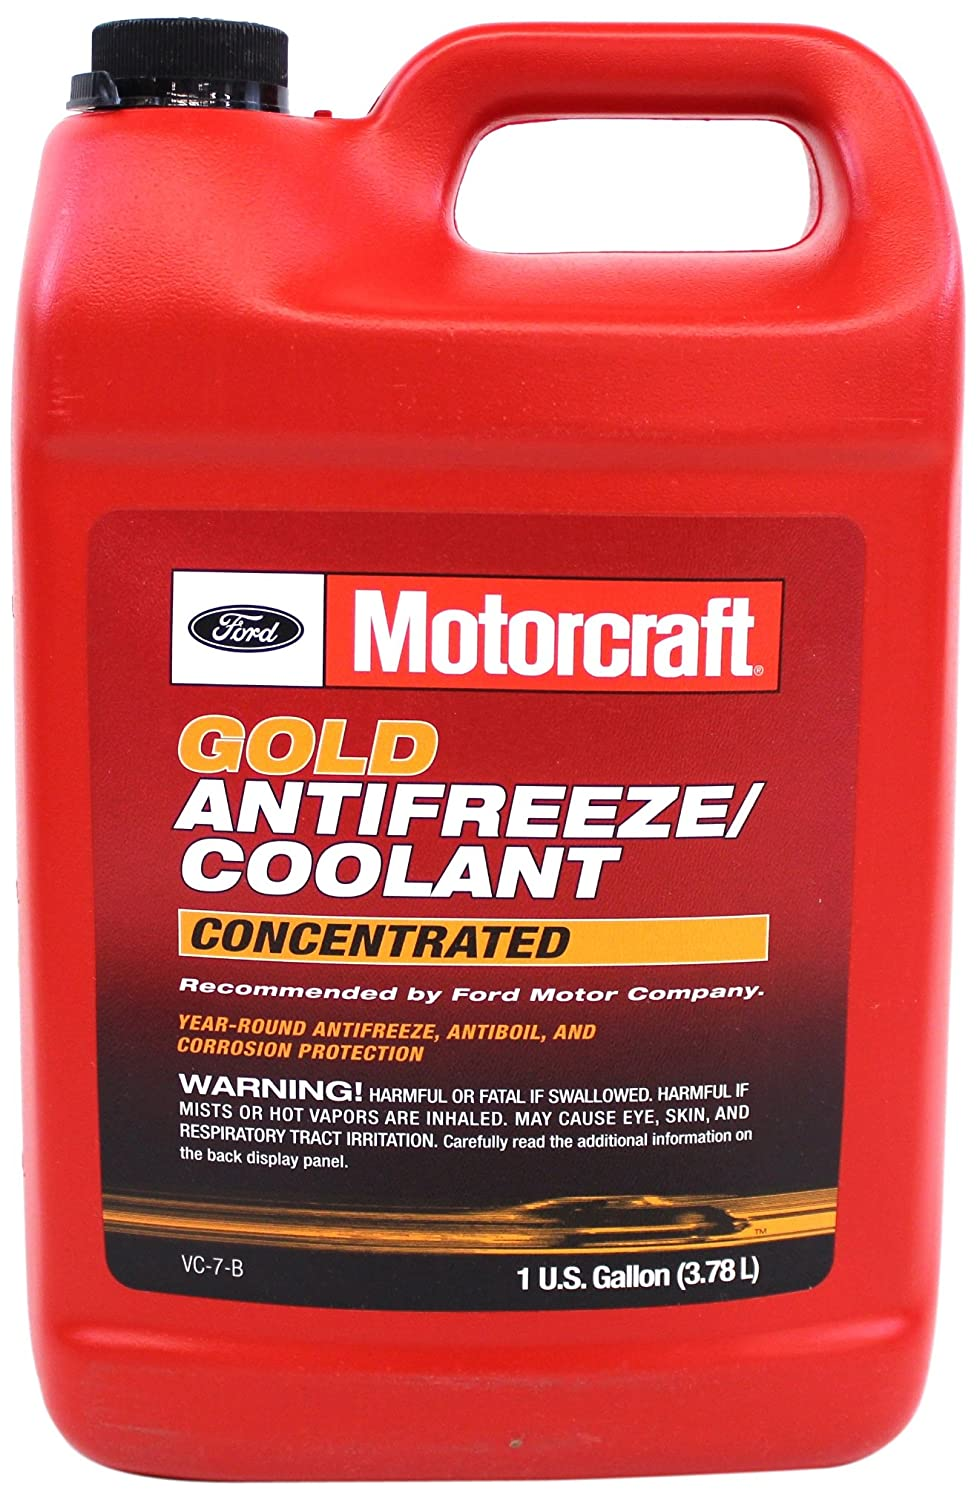 Amazon.com: Genuine Ford Fluid VC-7-B Gold Concentrated Antifreeze/Coolant  - 1 Gallon (Packaging may vary): Automotive